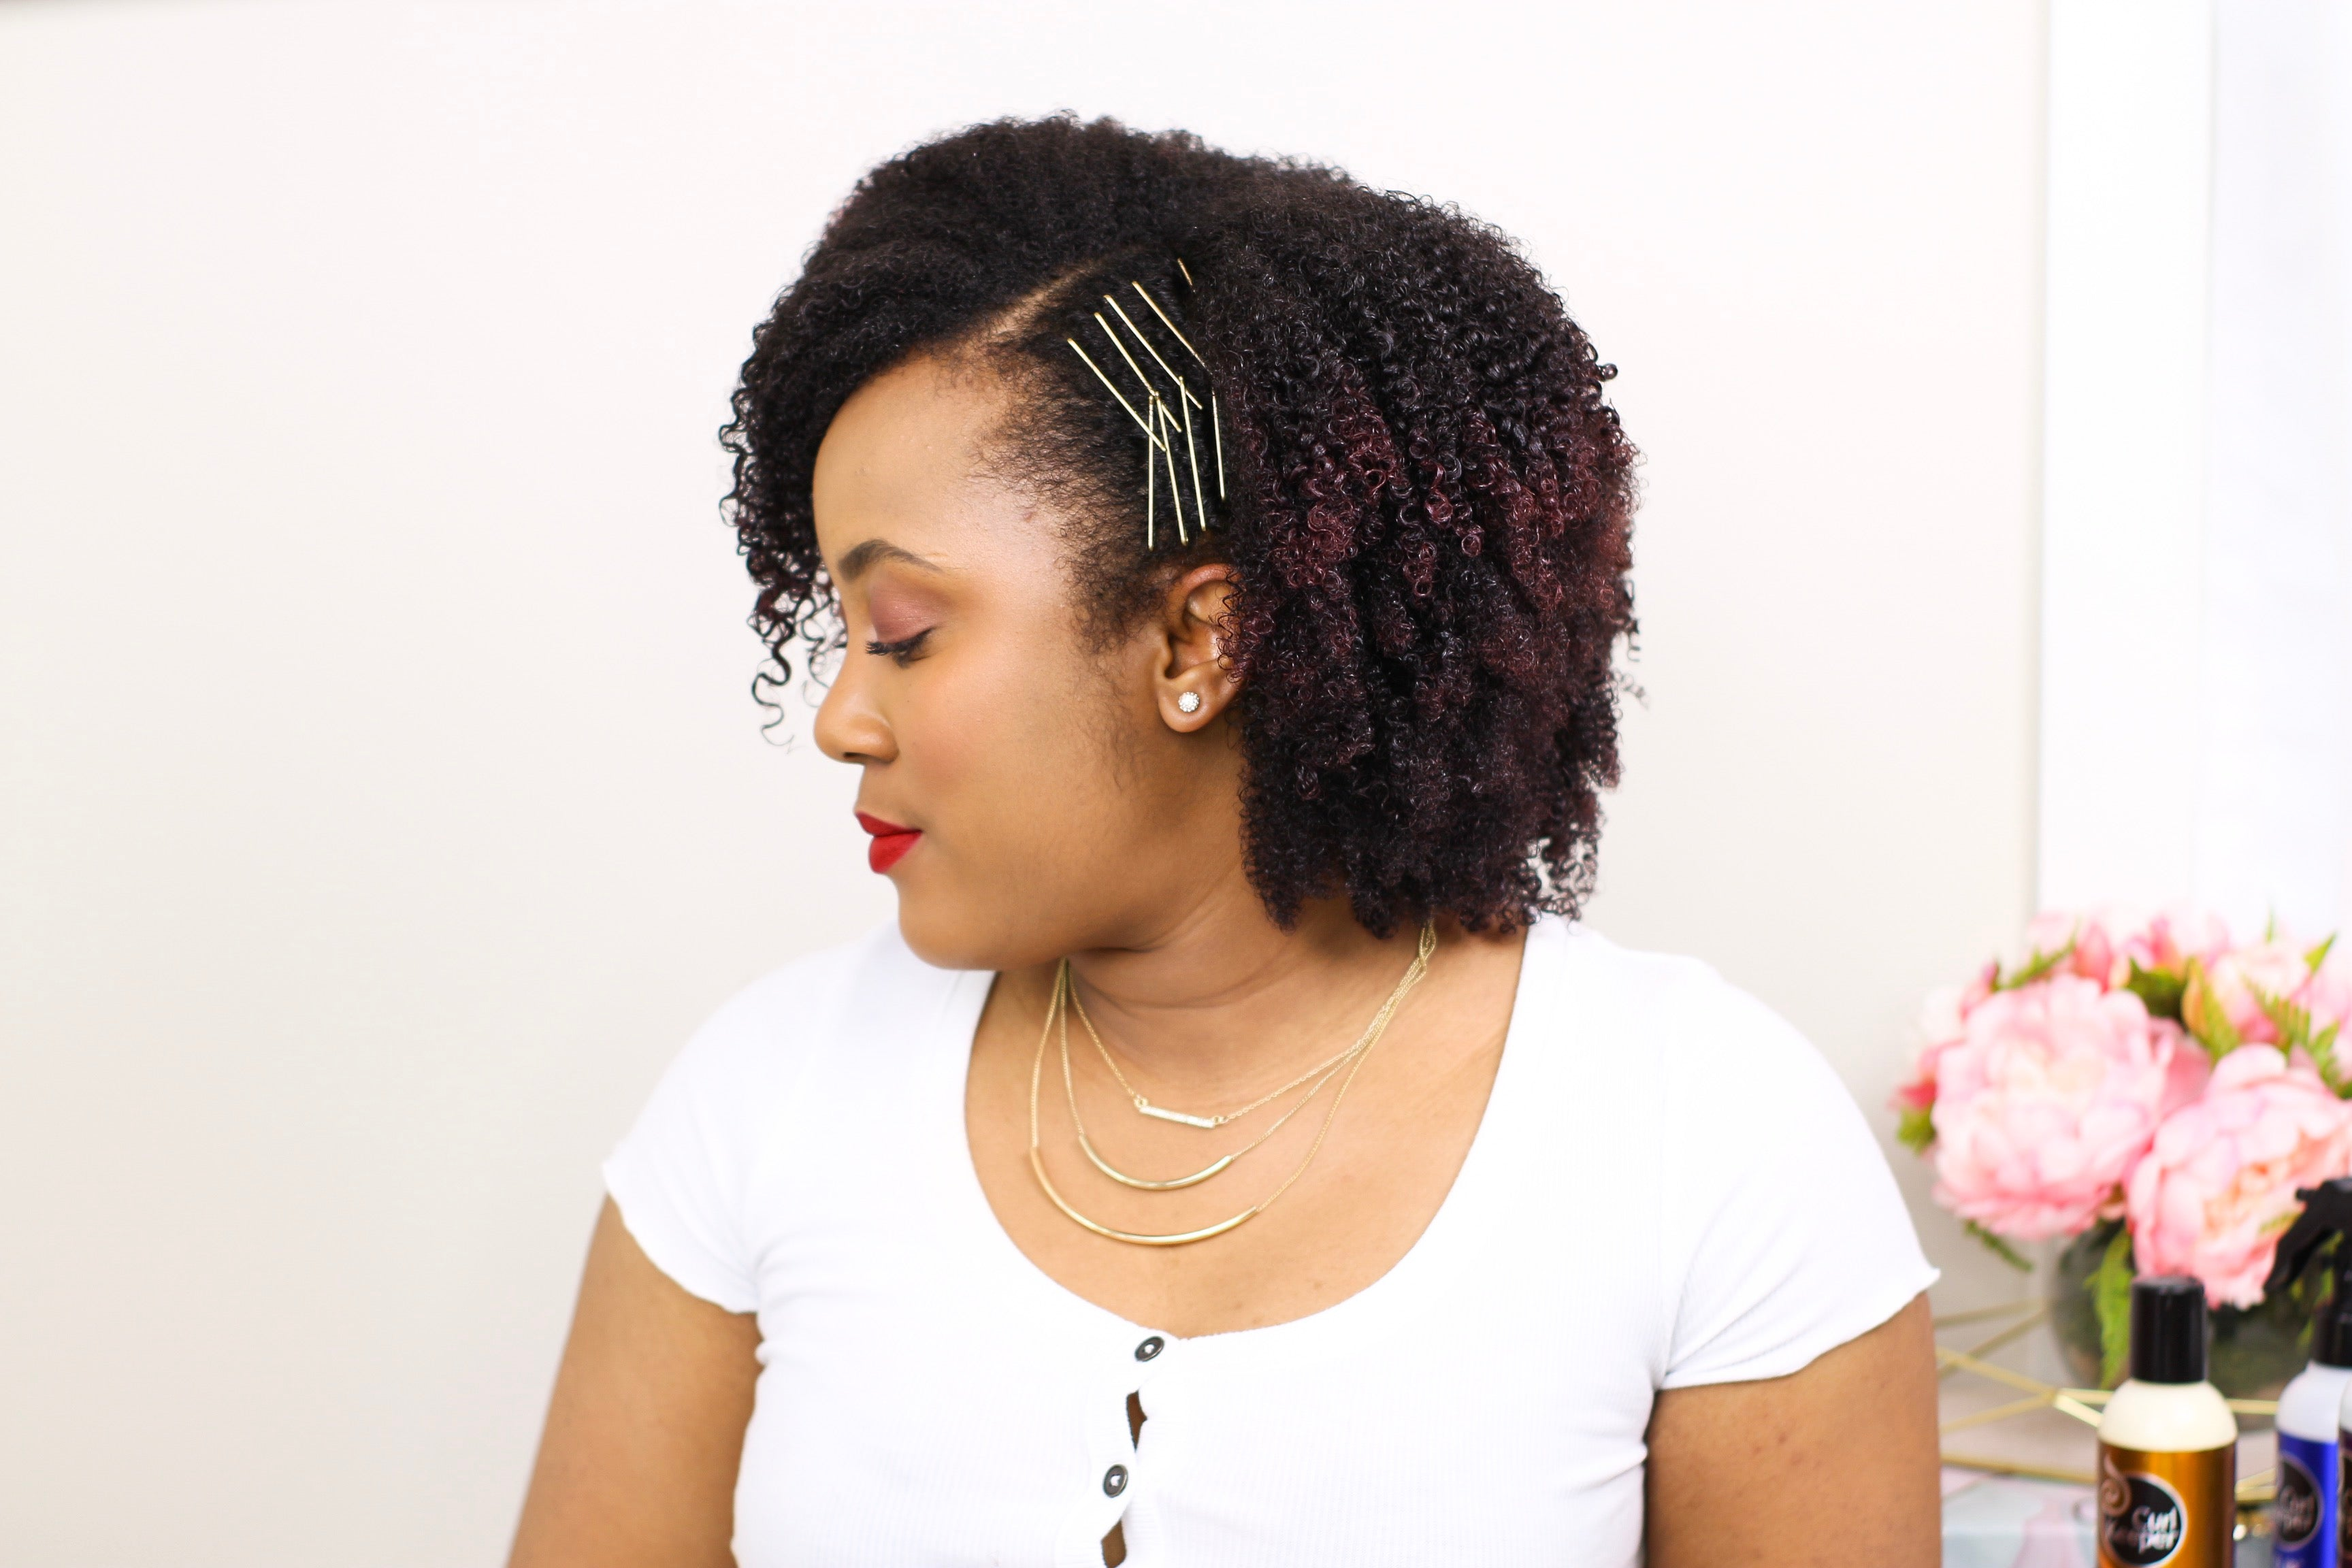 How to Rock Short, Curly Hair with Style and Confidence